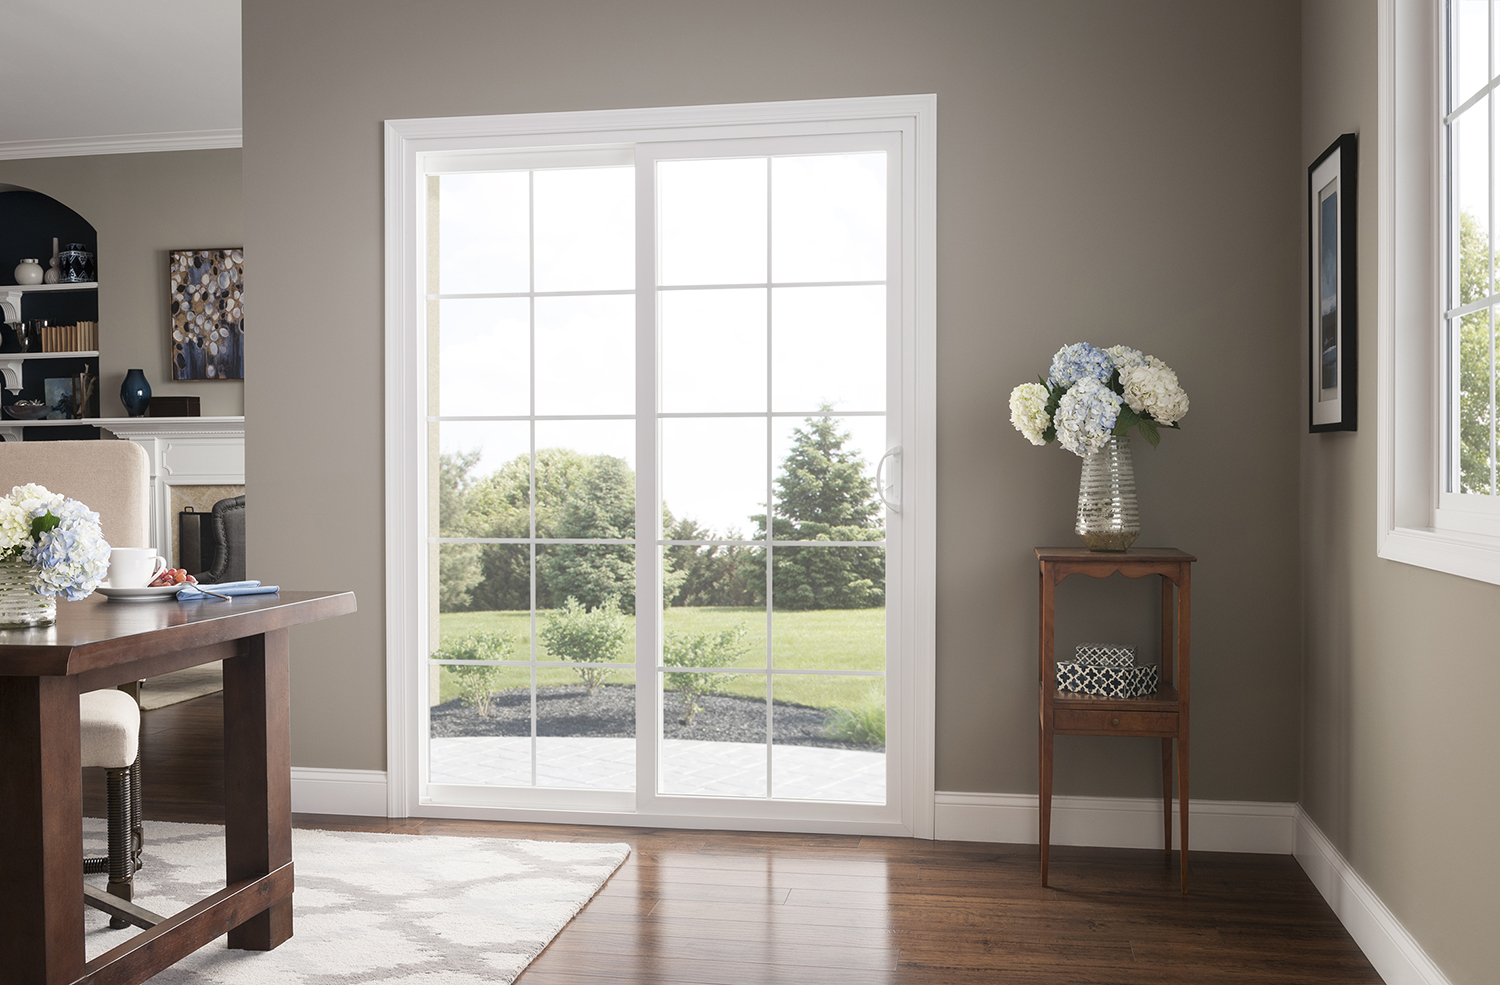 Mi Homemaker3 390 Sliding Glass Door In Living Room